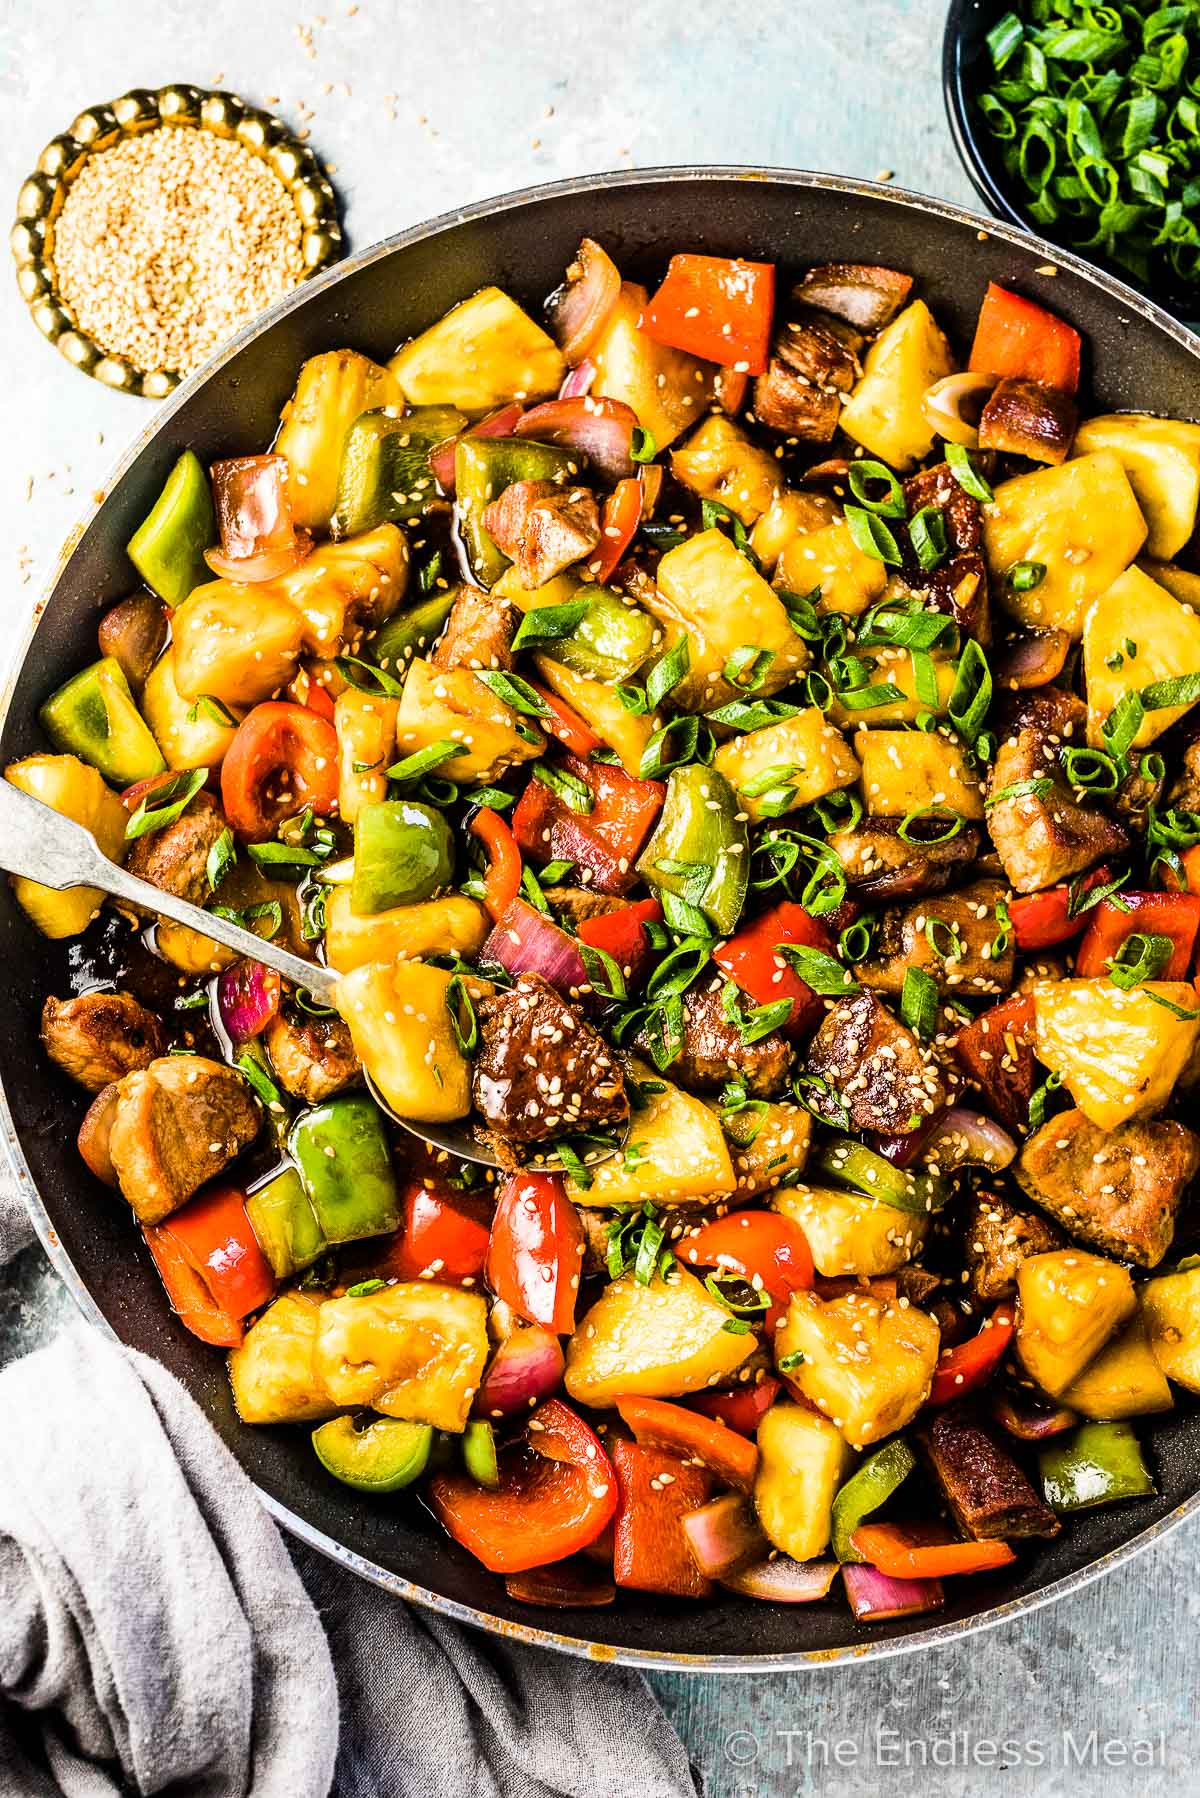 A pan filled with pineapple pork stir fry on a table with sesame seeds and green onions beside it.